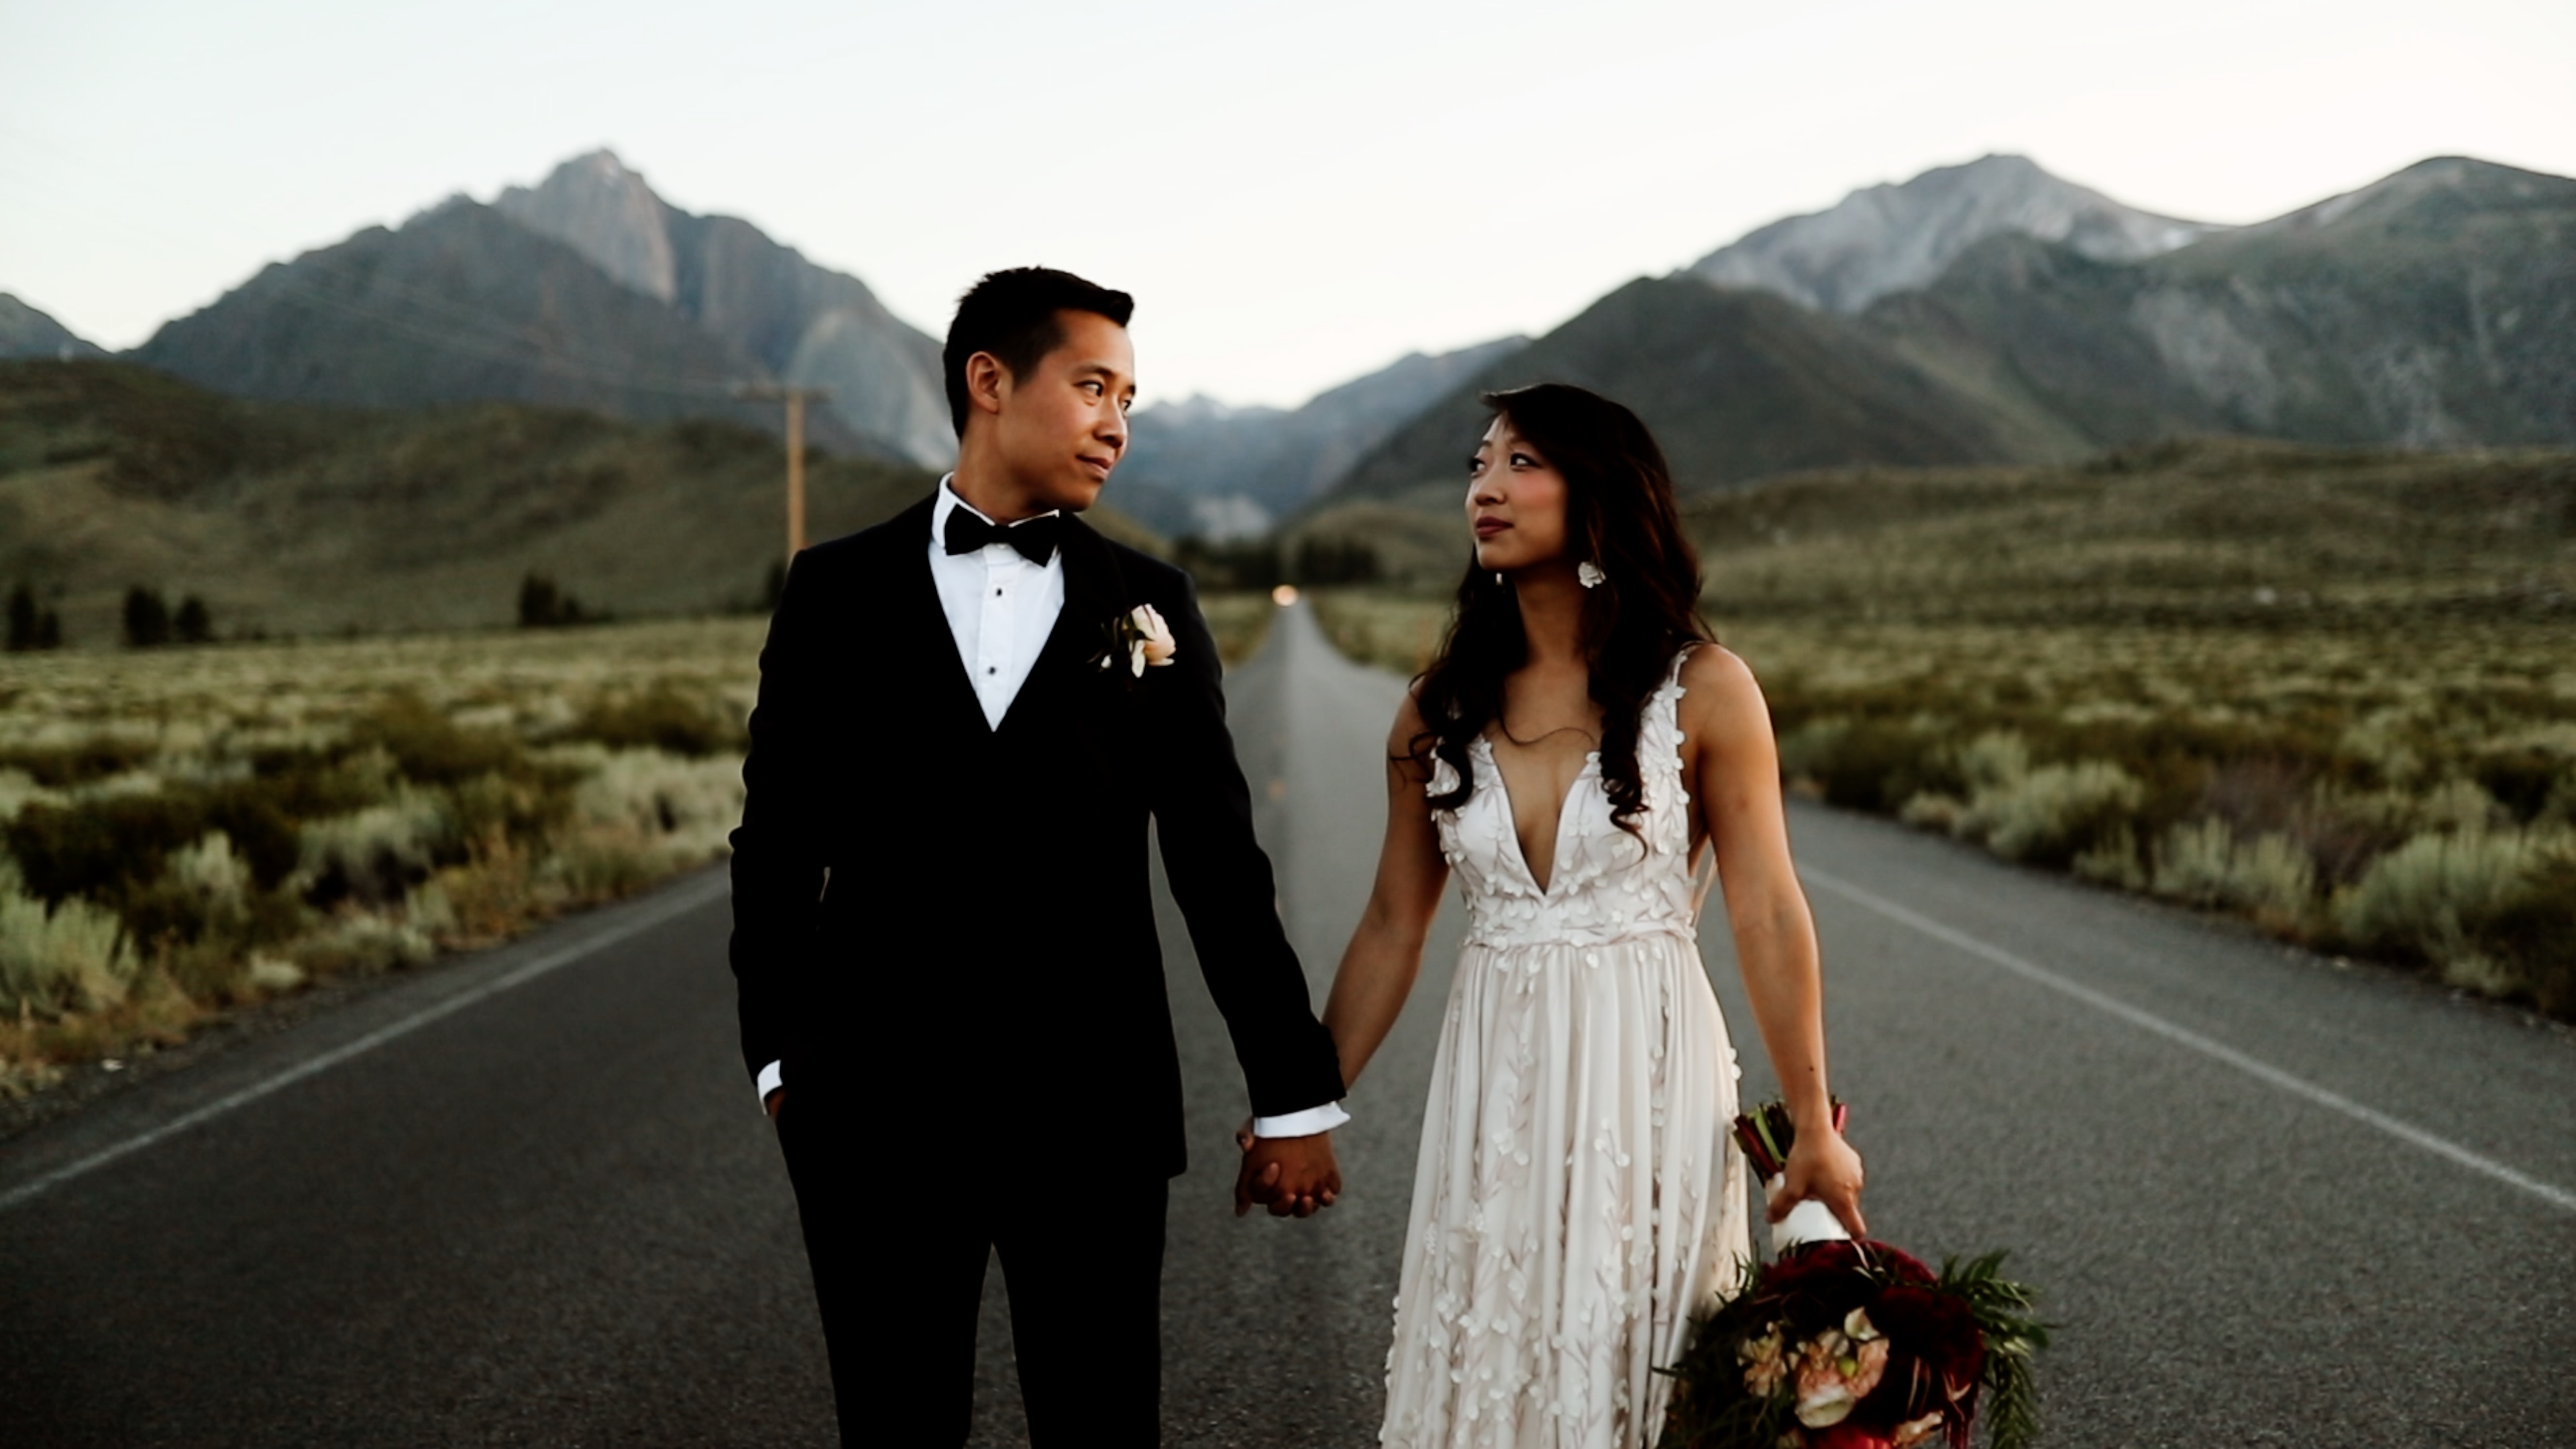 Audrey + Tim | Mammoth Lakes, California | Convict Lake Resort